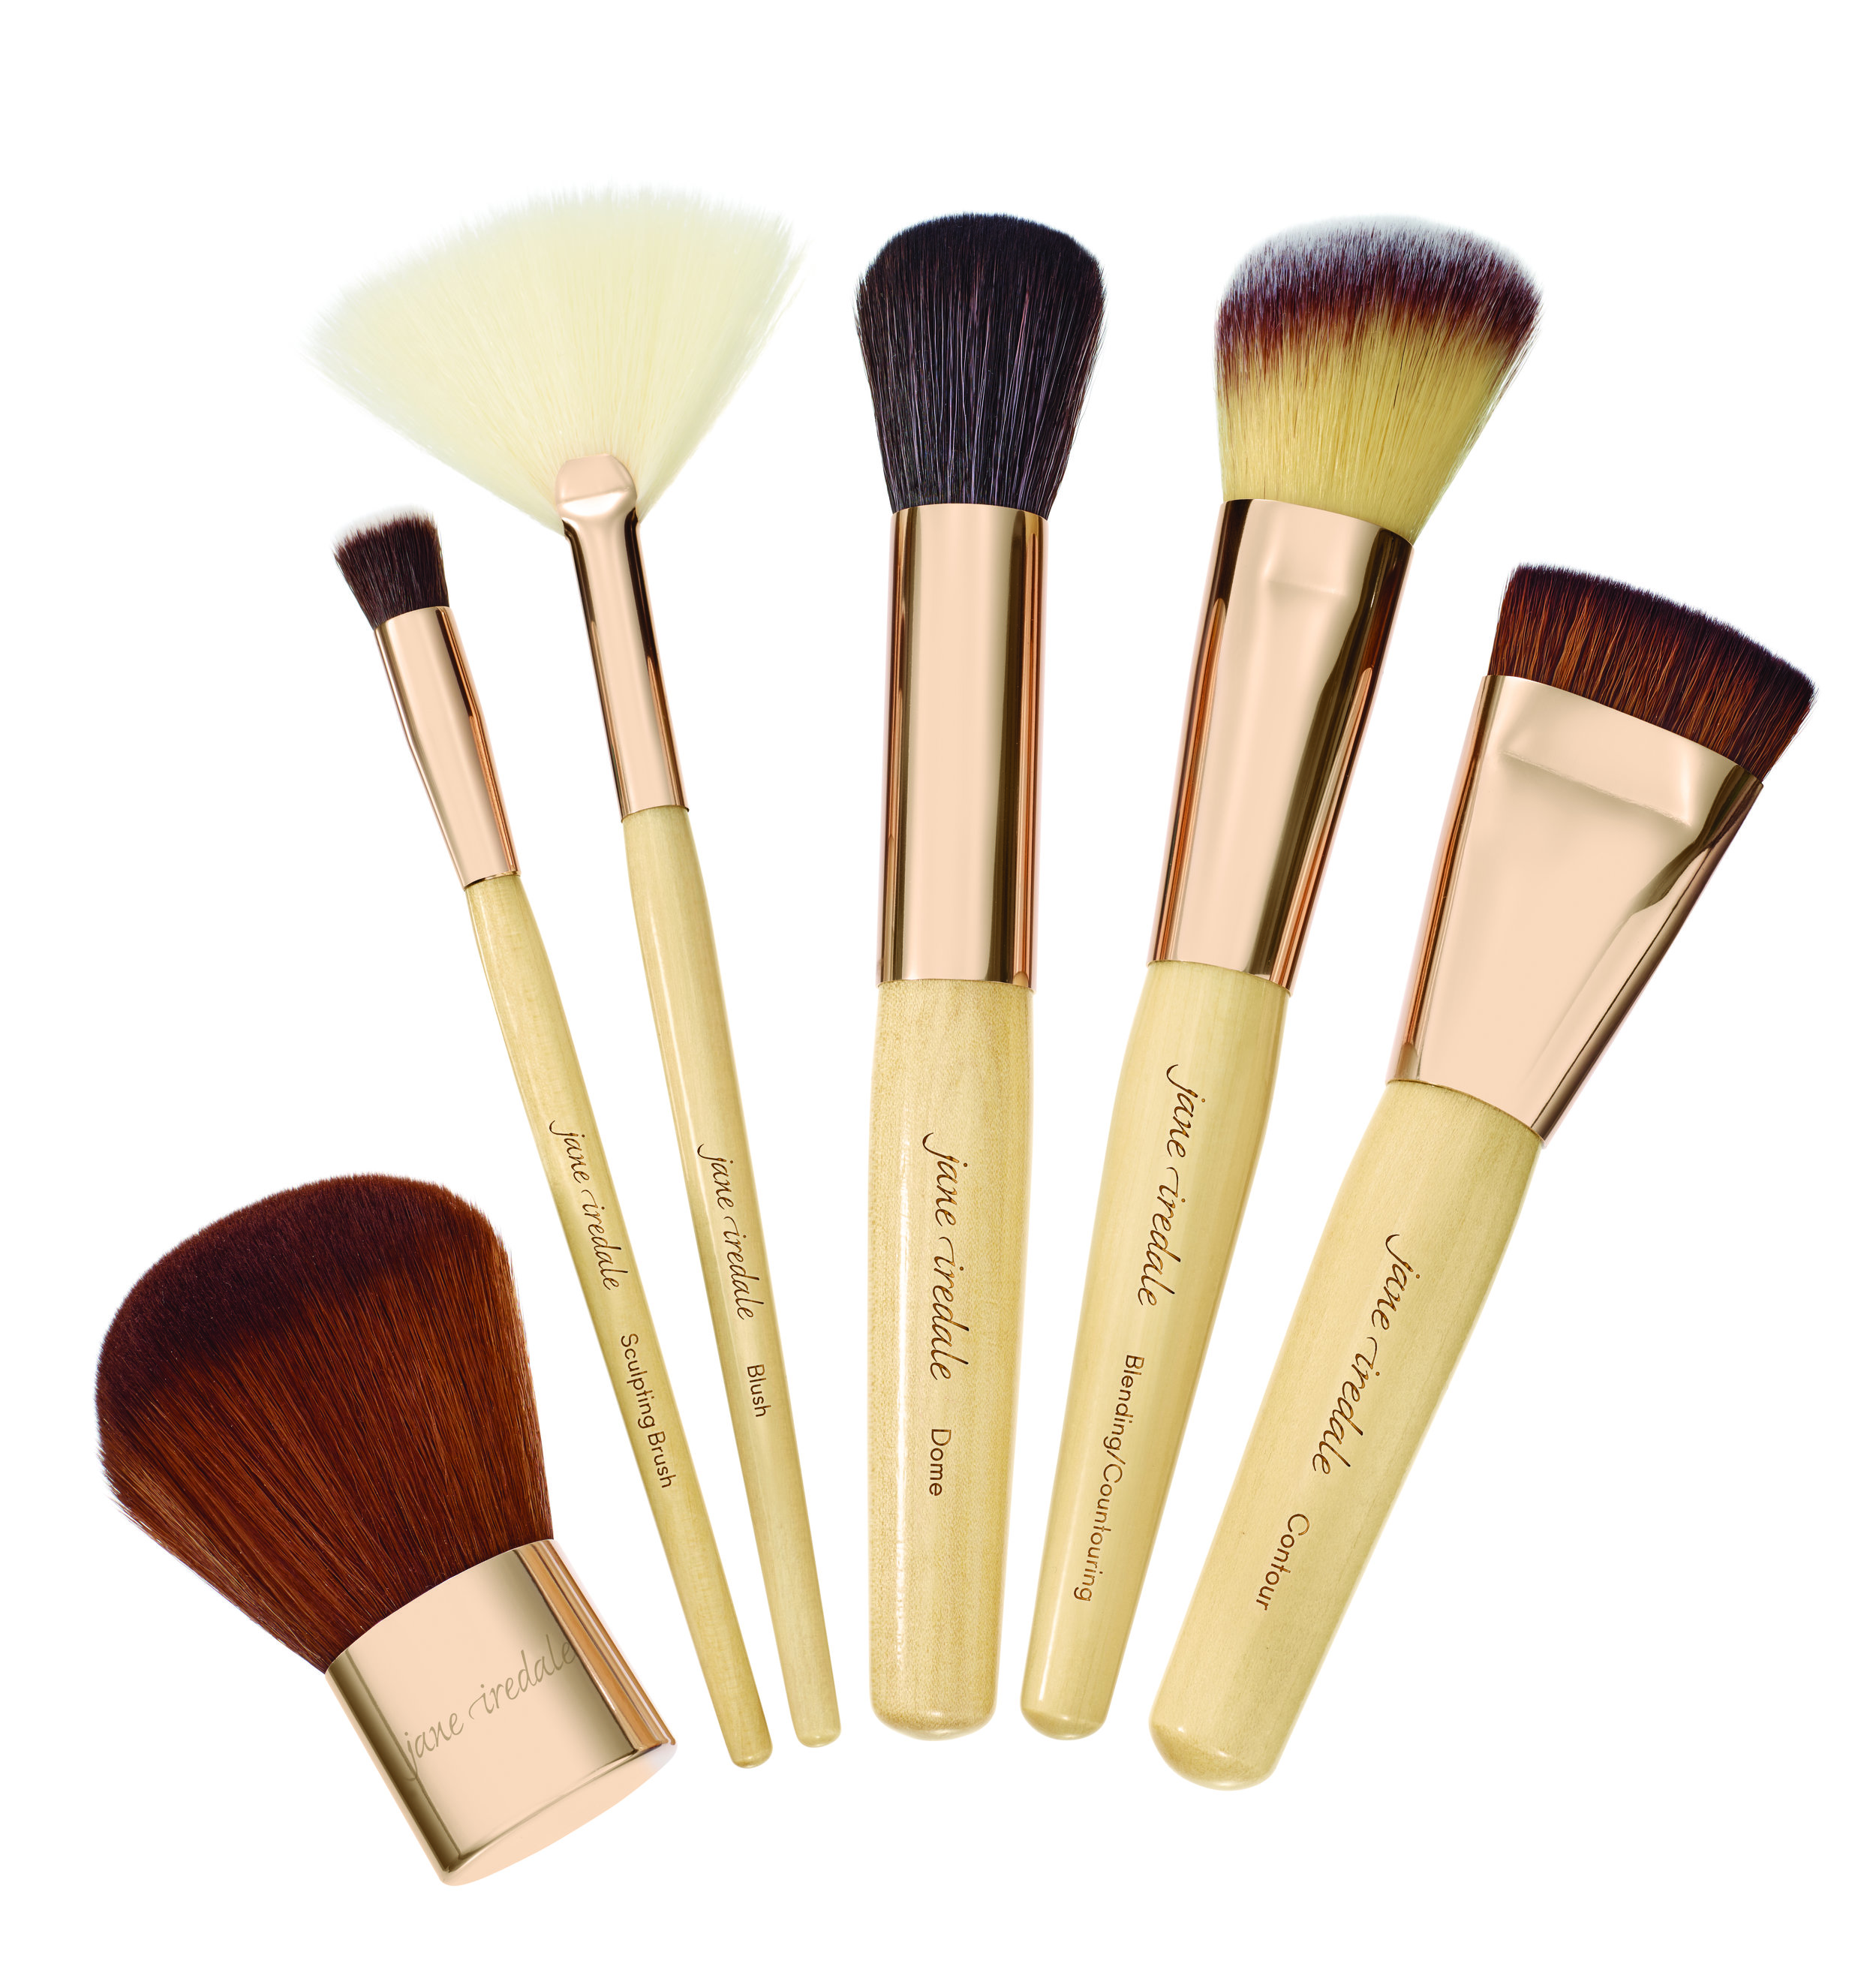 WNTR18-Brushes_CheekGroup.jpg